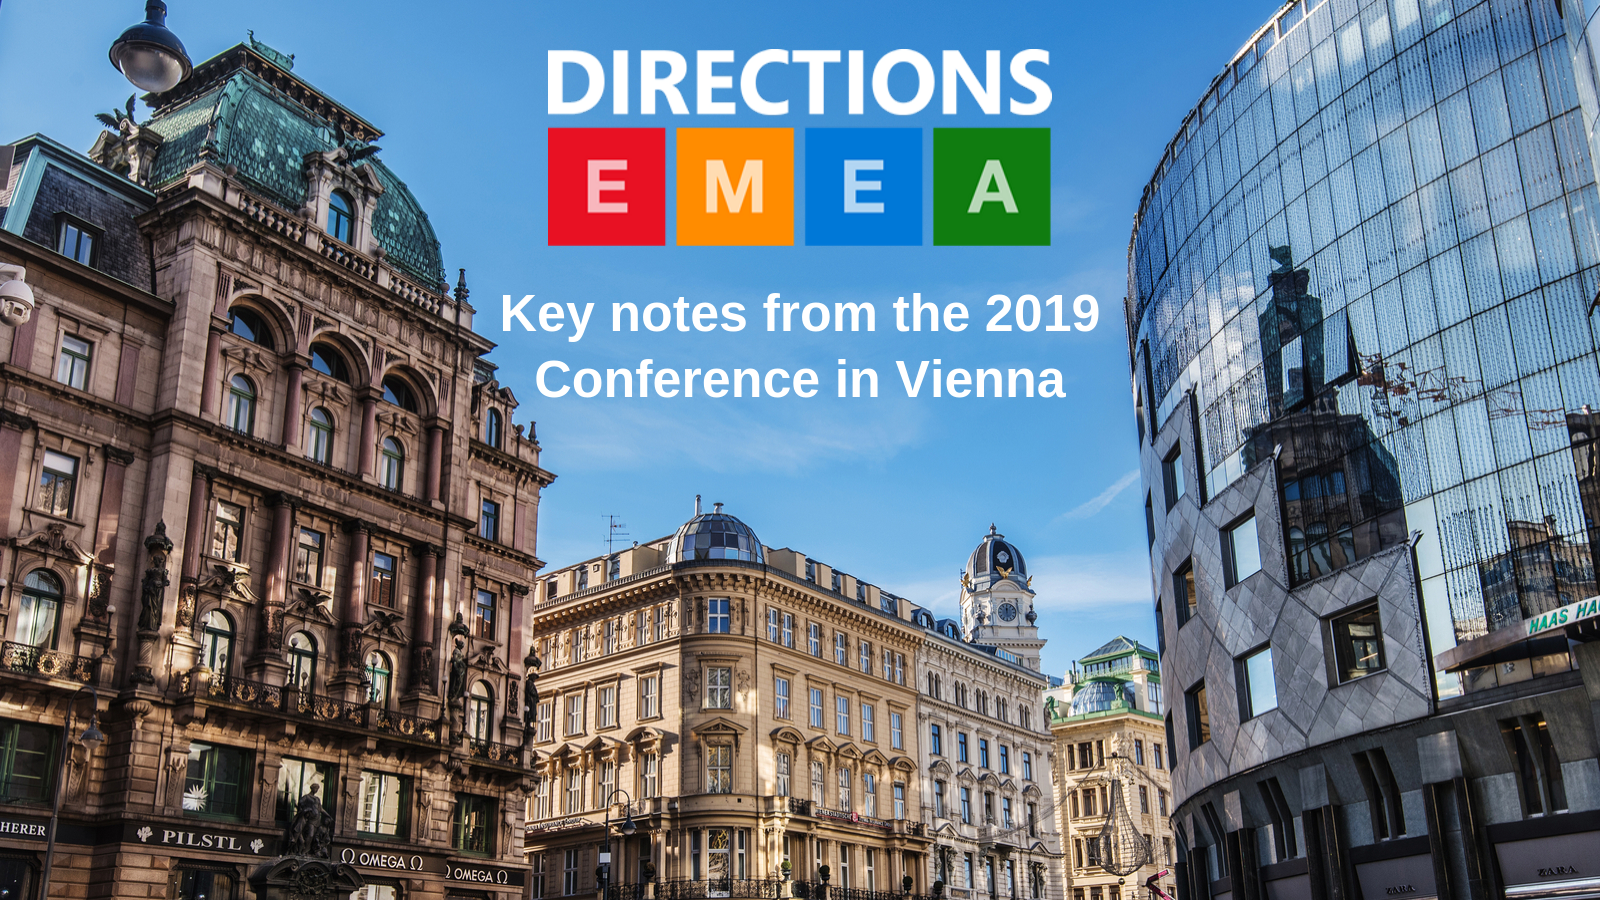 Key notes from the Directions EMEA conference 2019